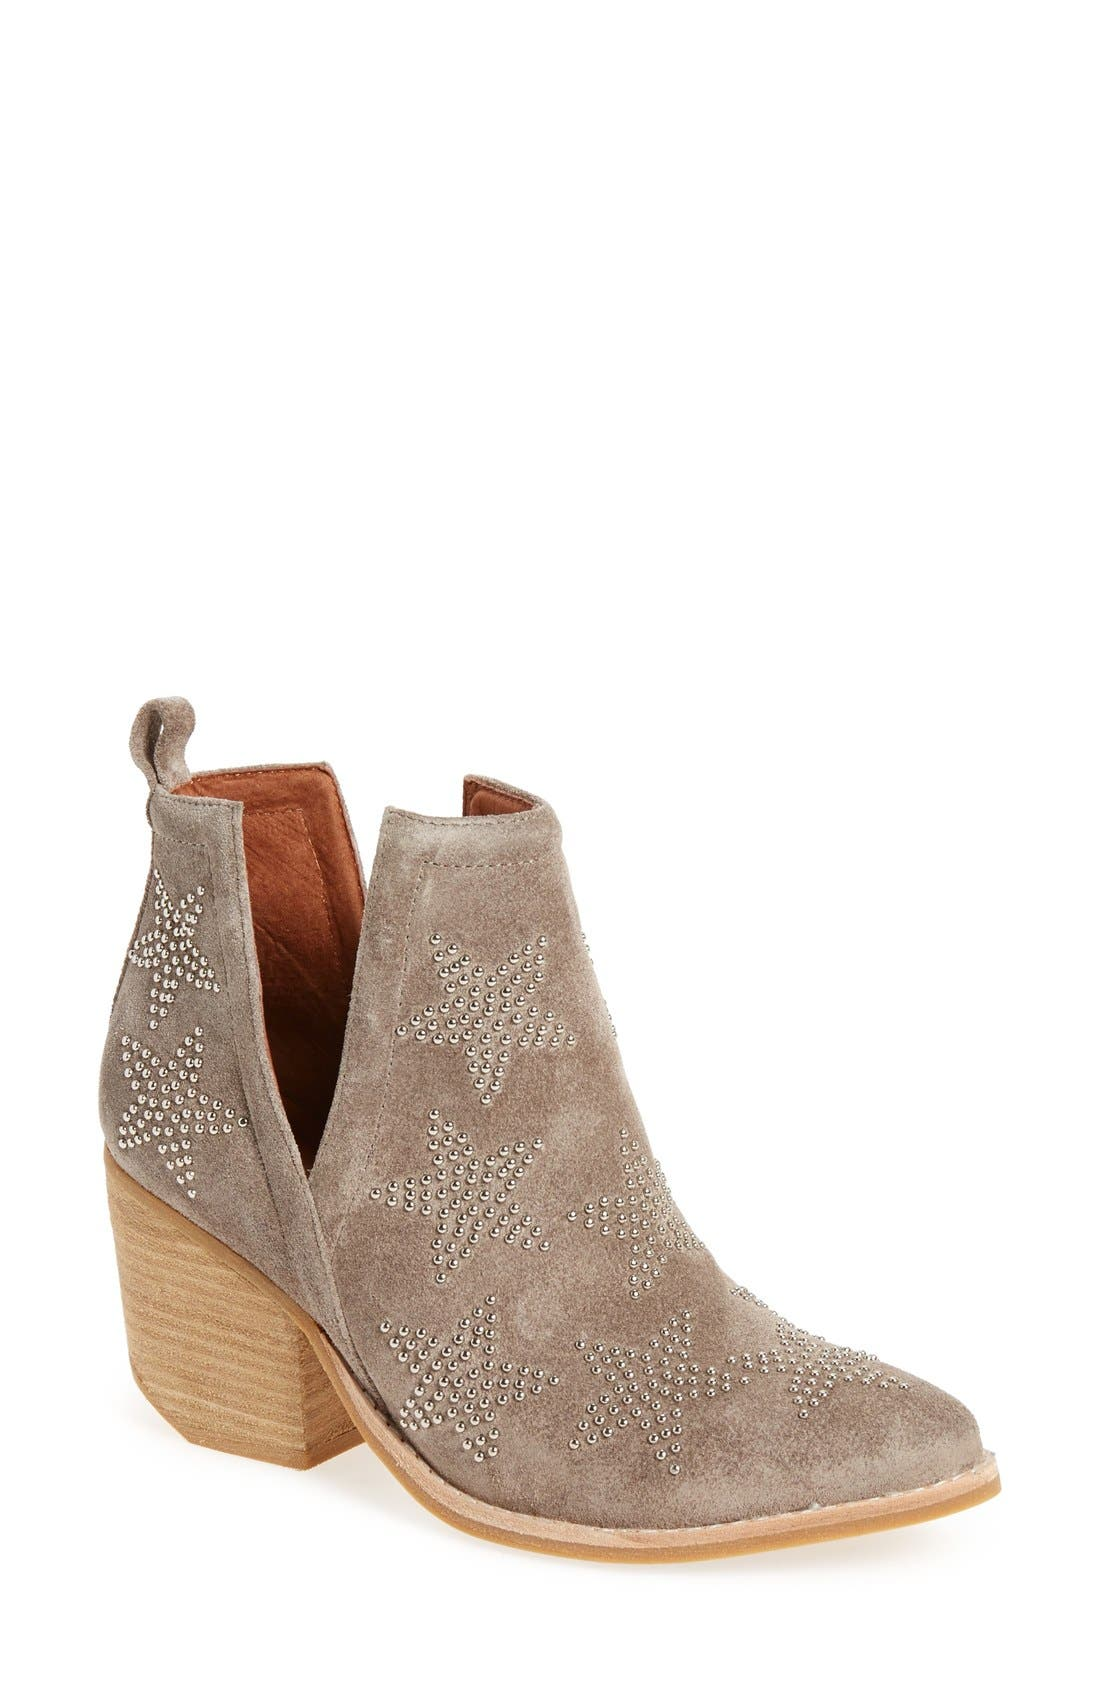 Alternate Image 1 Selected - Jeffrey Campbell 'Asterial' Star Studded Bootie (Women)